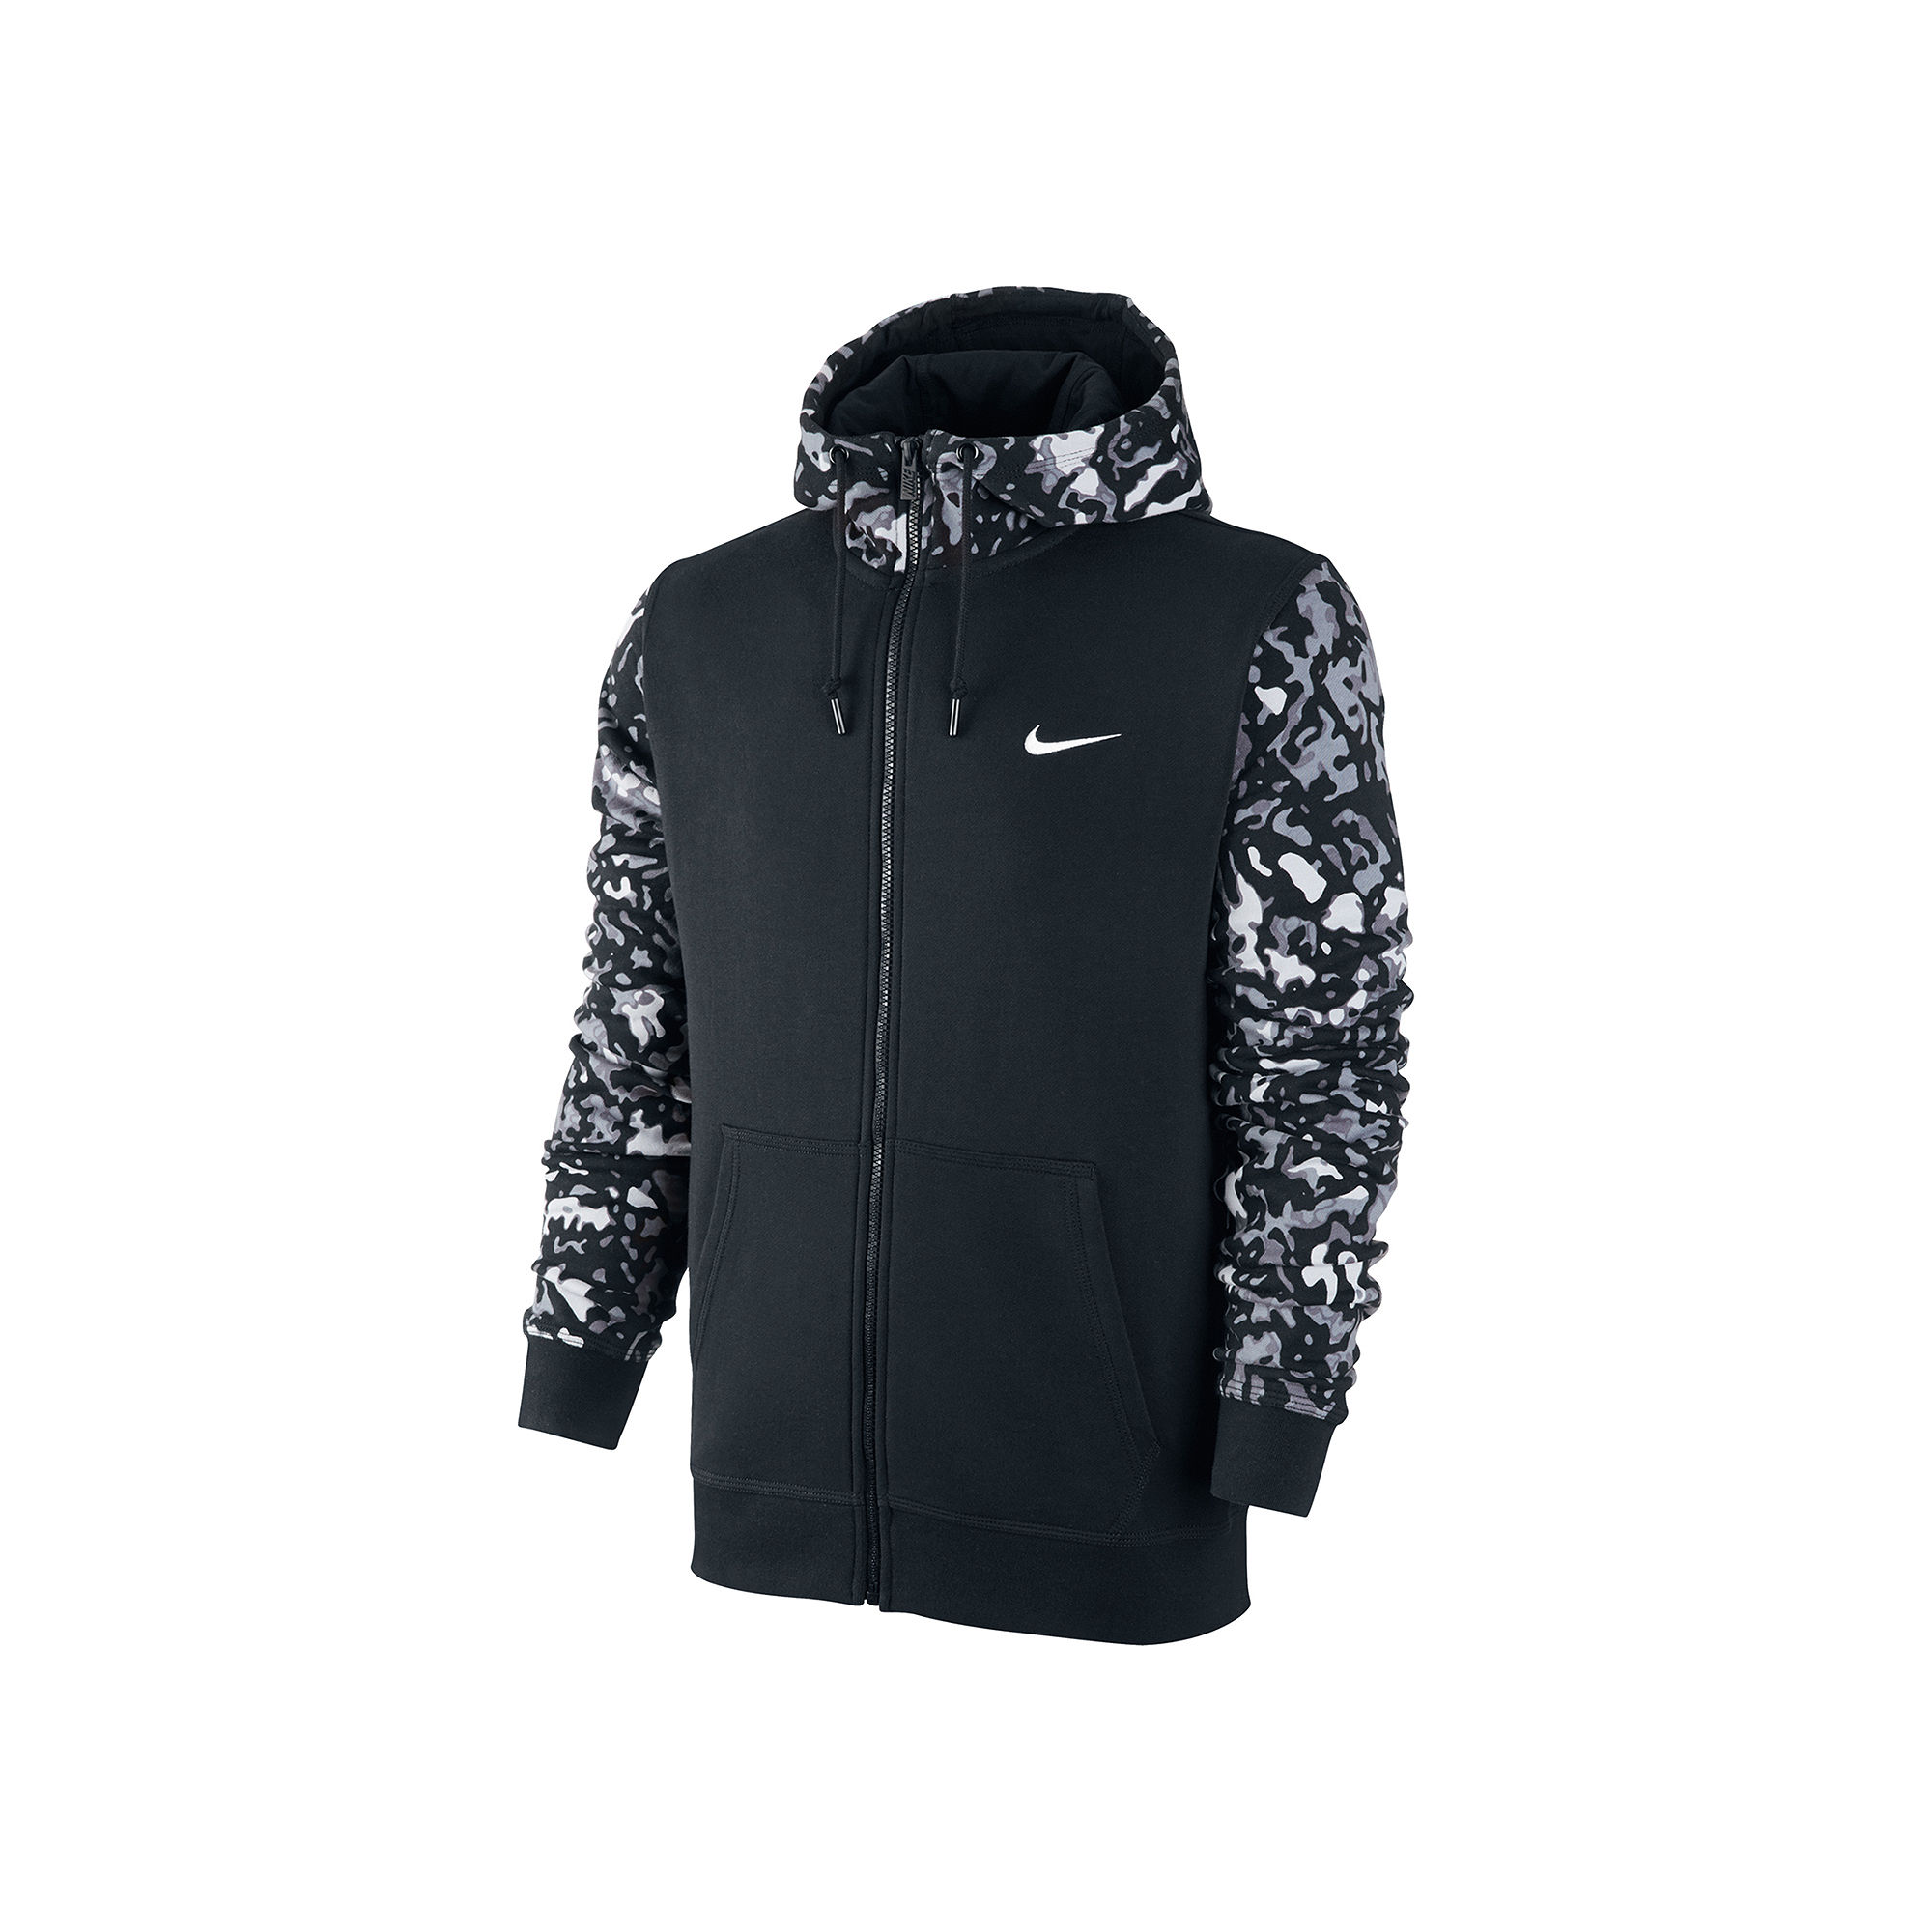 upc 885179639639 nike club camo full zip terry hoodie. Black Bedroom Furniture Sets. Home Design Ideas